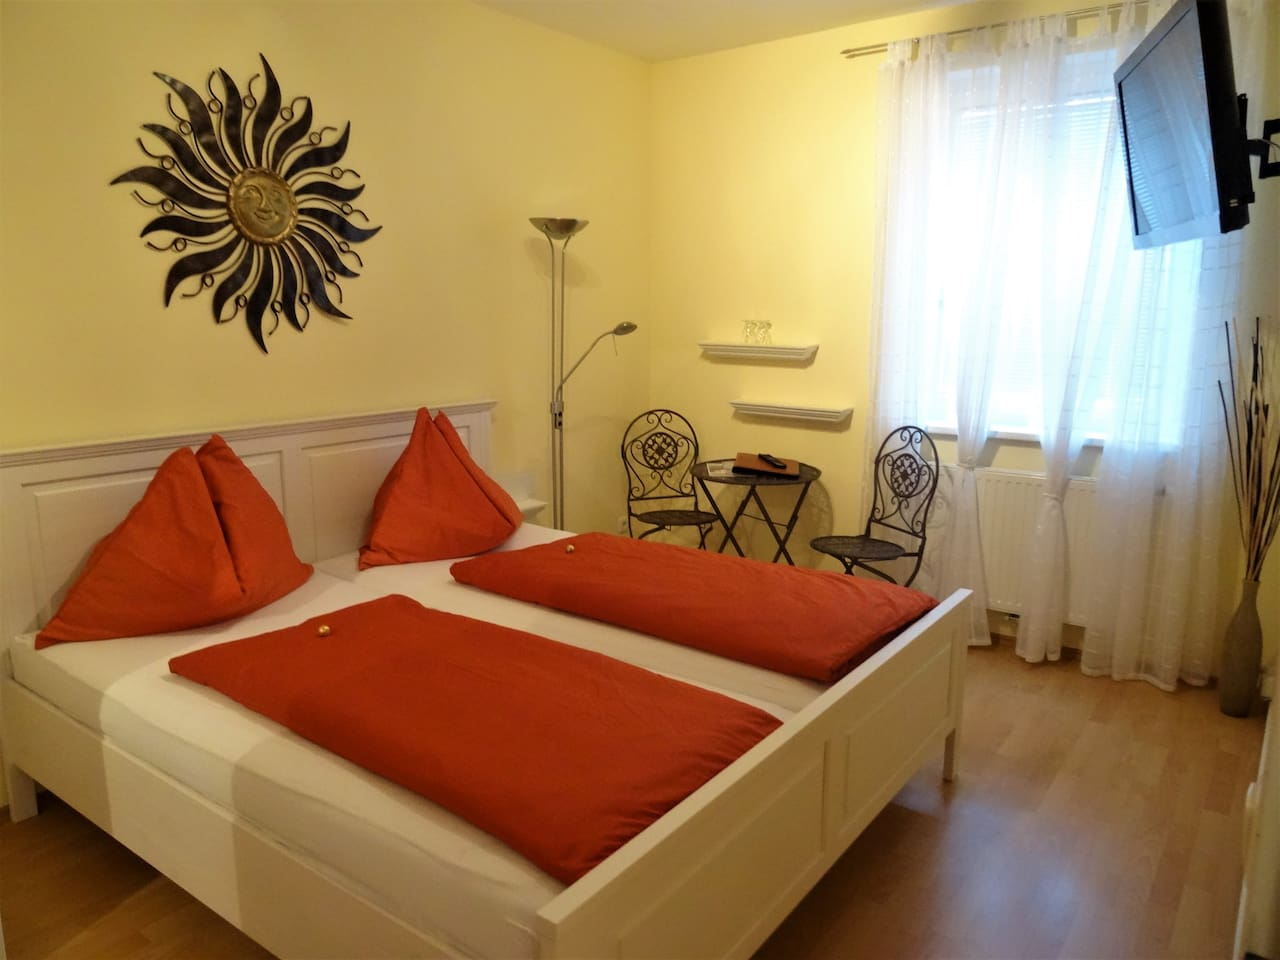 Zimmer mit Doppelbett, Schrank und Kabel-TV - Room with double bed, cupboard and cable-TV